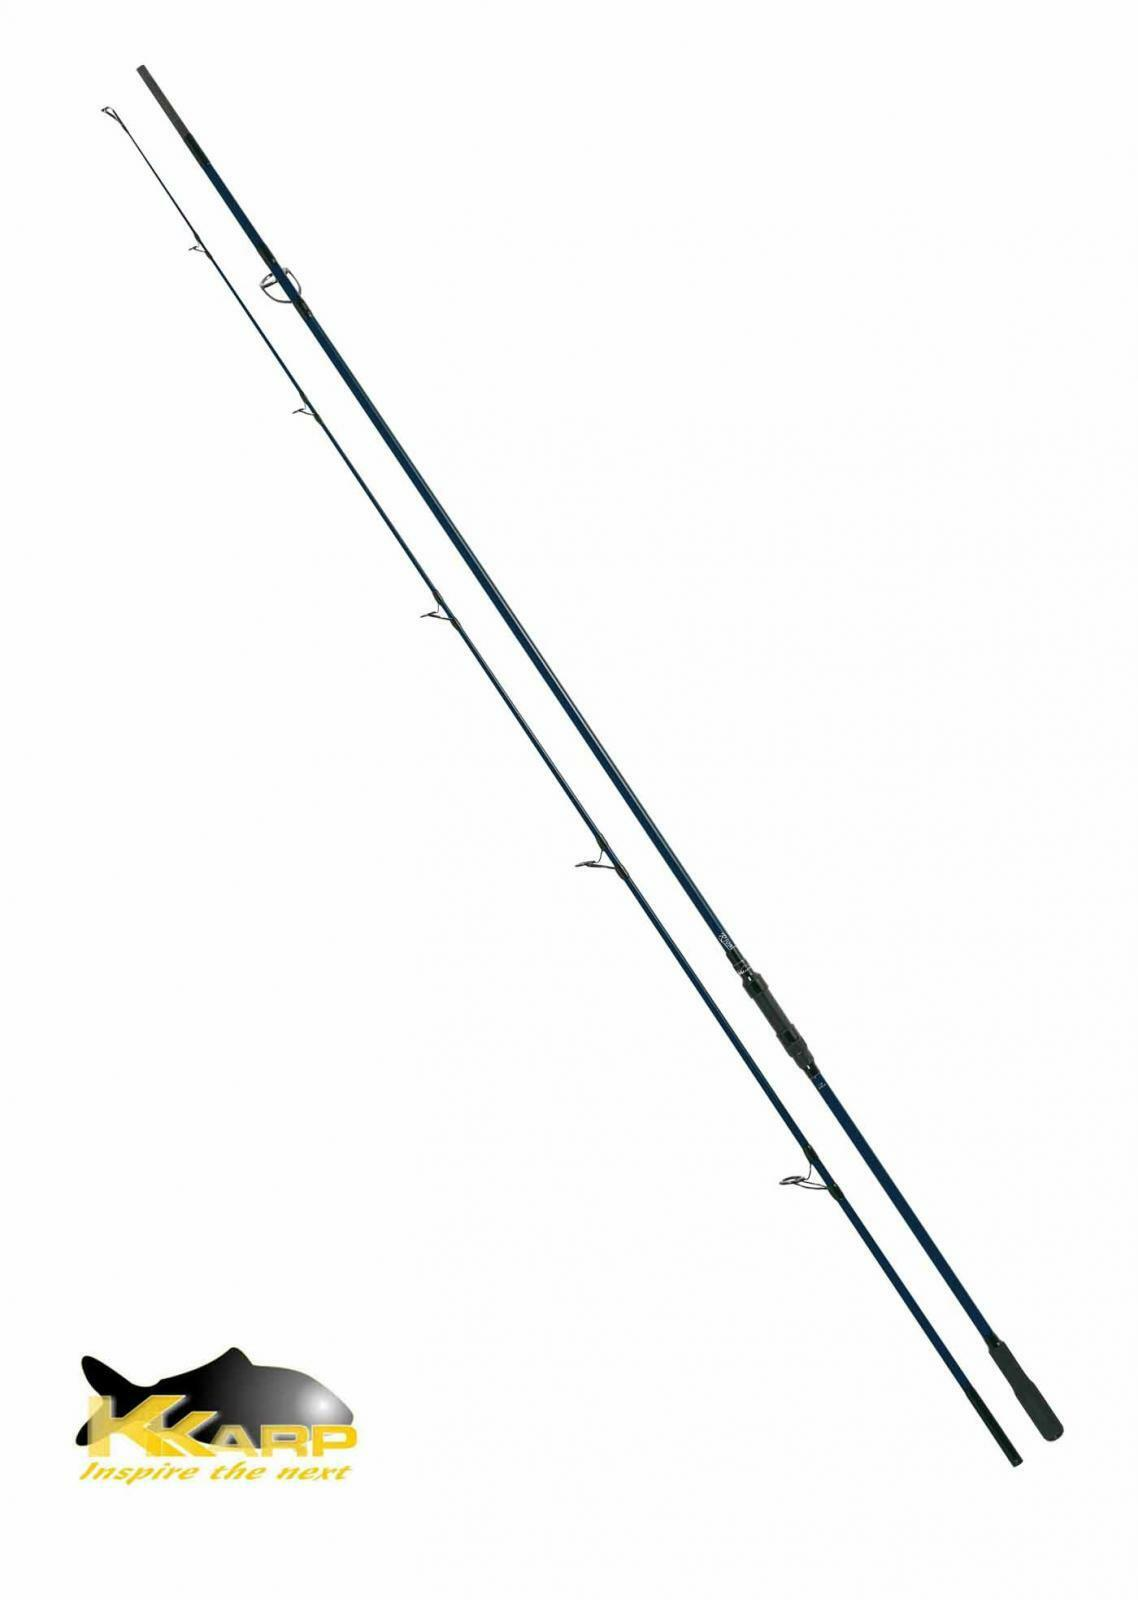 Canna Kkarp Rival 3.00 Lbs 360  390 cm Pesca Carpfishing Carbonio Due Sezi PP